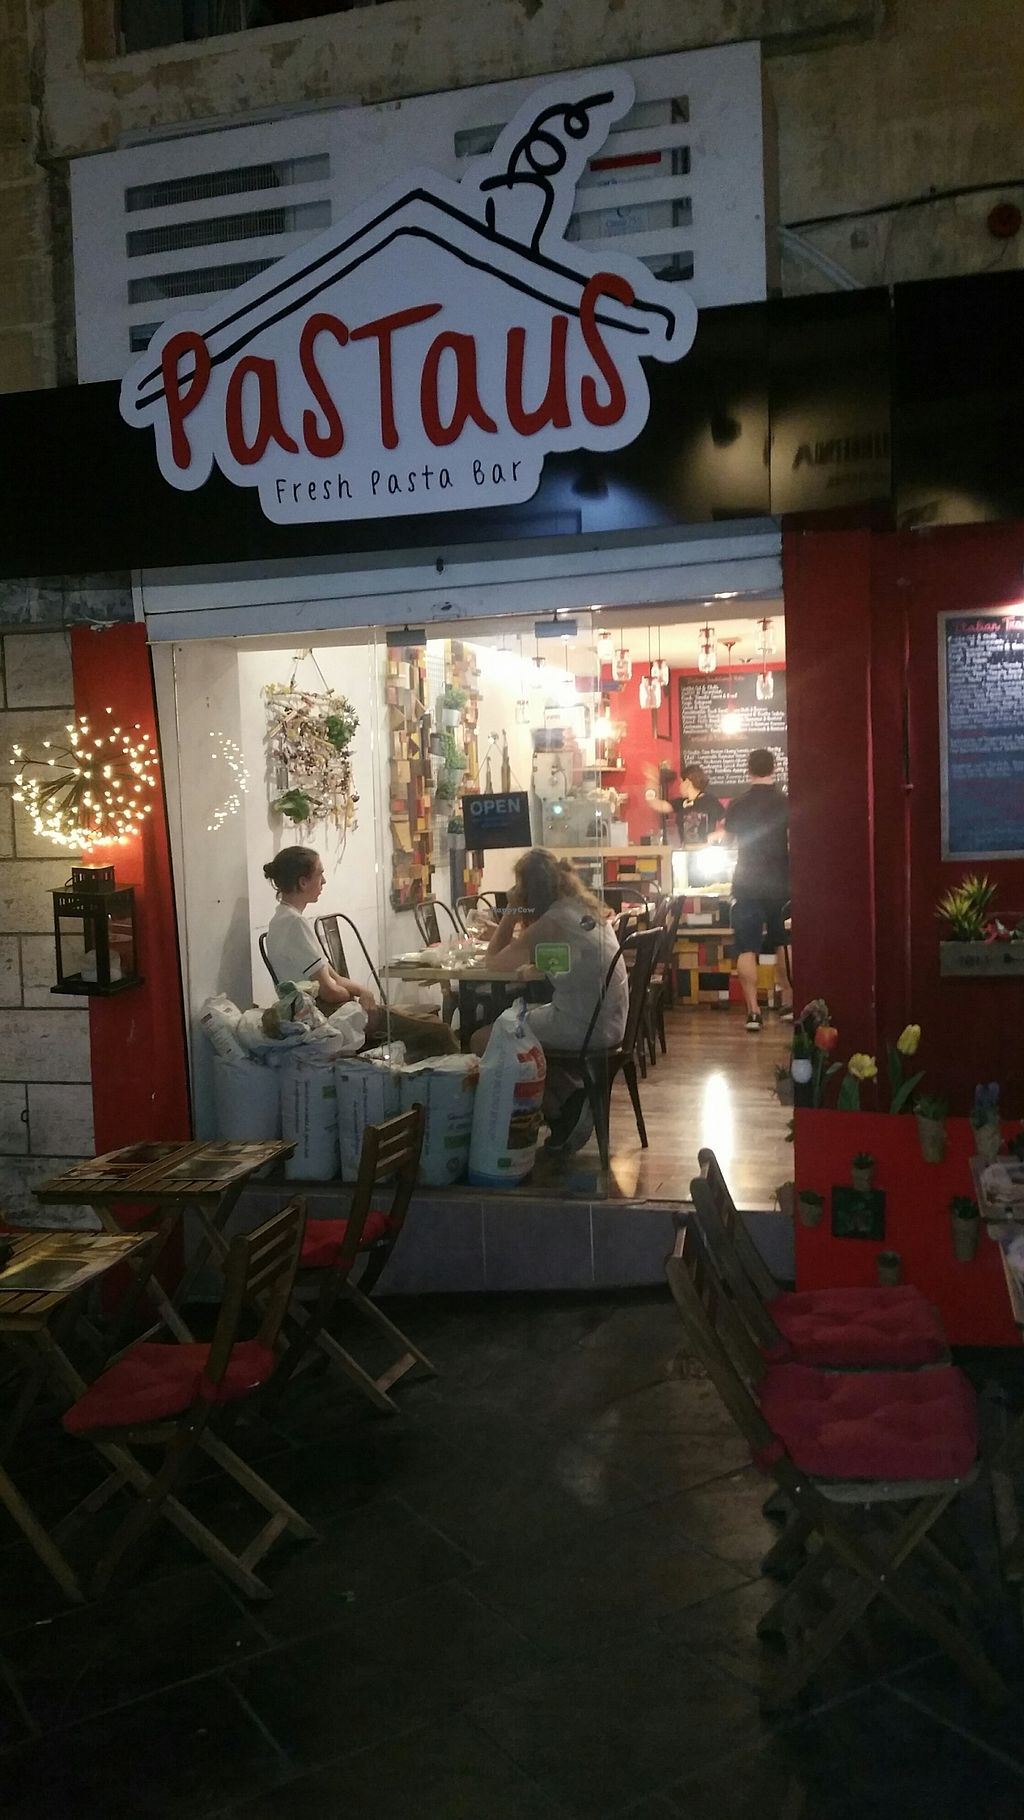 """Photo of Pastaus  by <a href=""""/members/profile/jollypig"""">jollypig</a> <br/>Outside looking in <br/> September 18, 2017  - <a href='/contact/abuse/image/89414/305835'>Report</a>"""